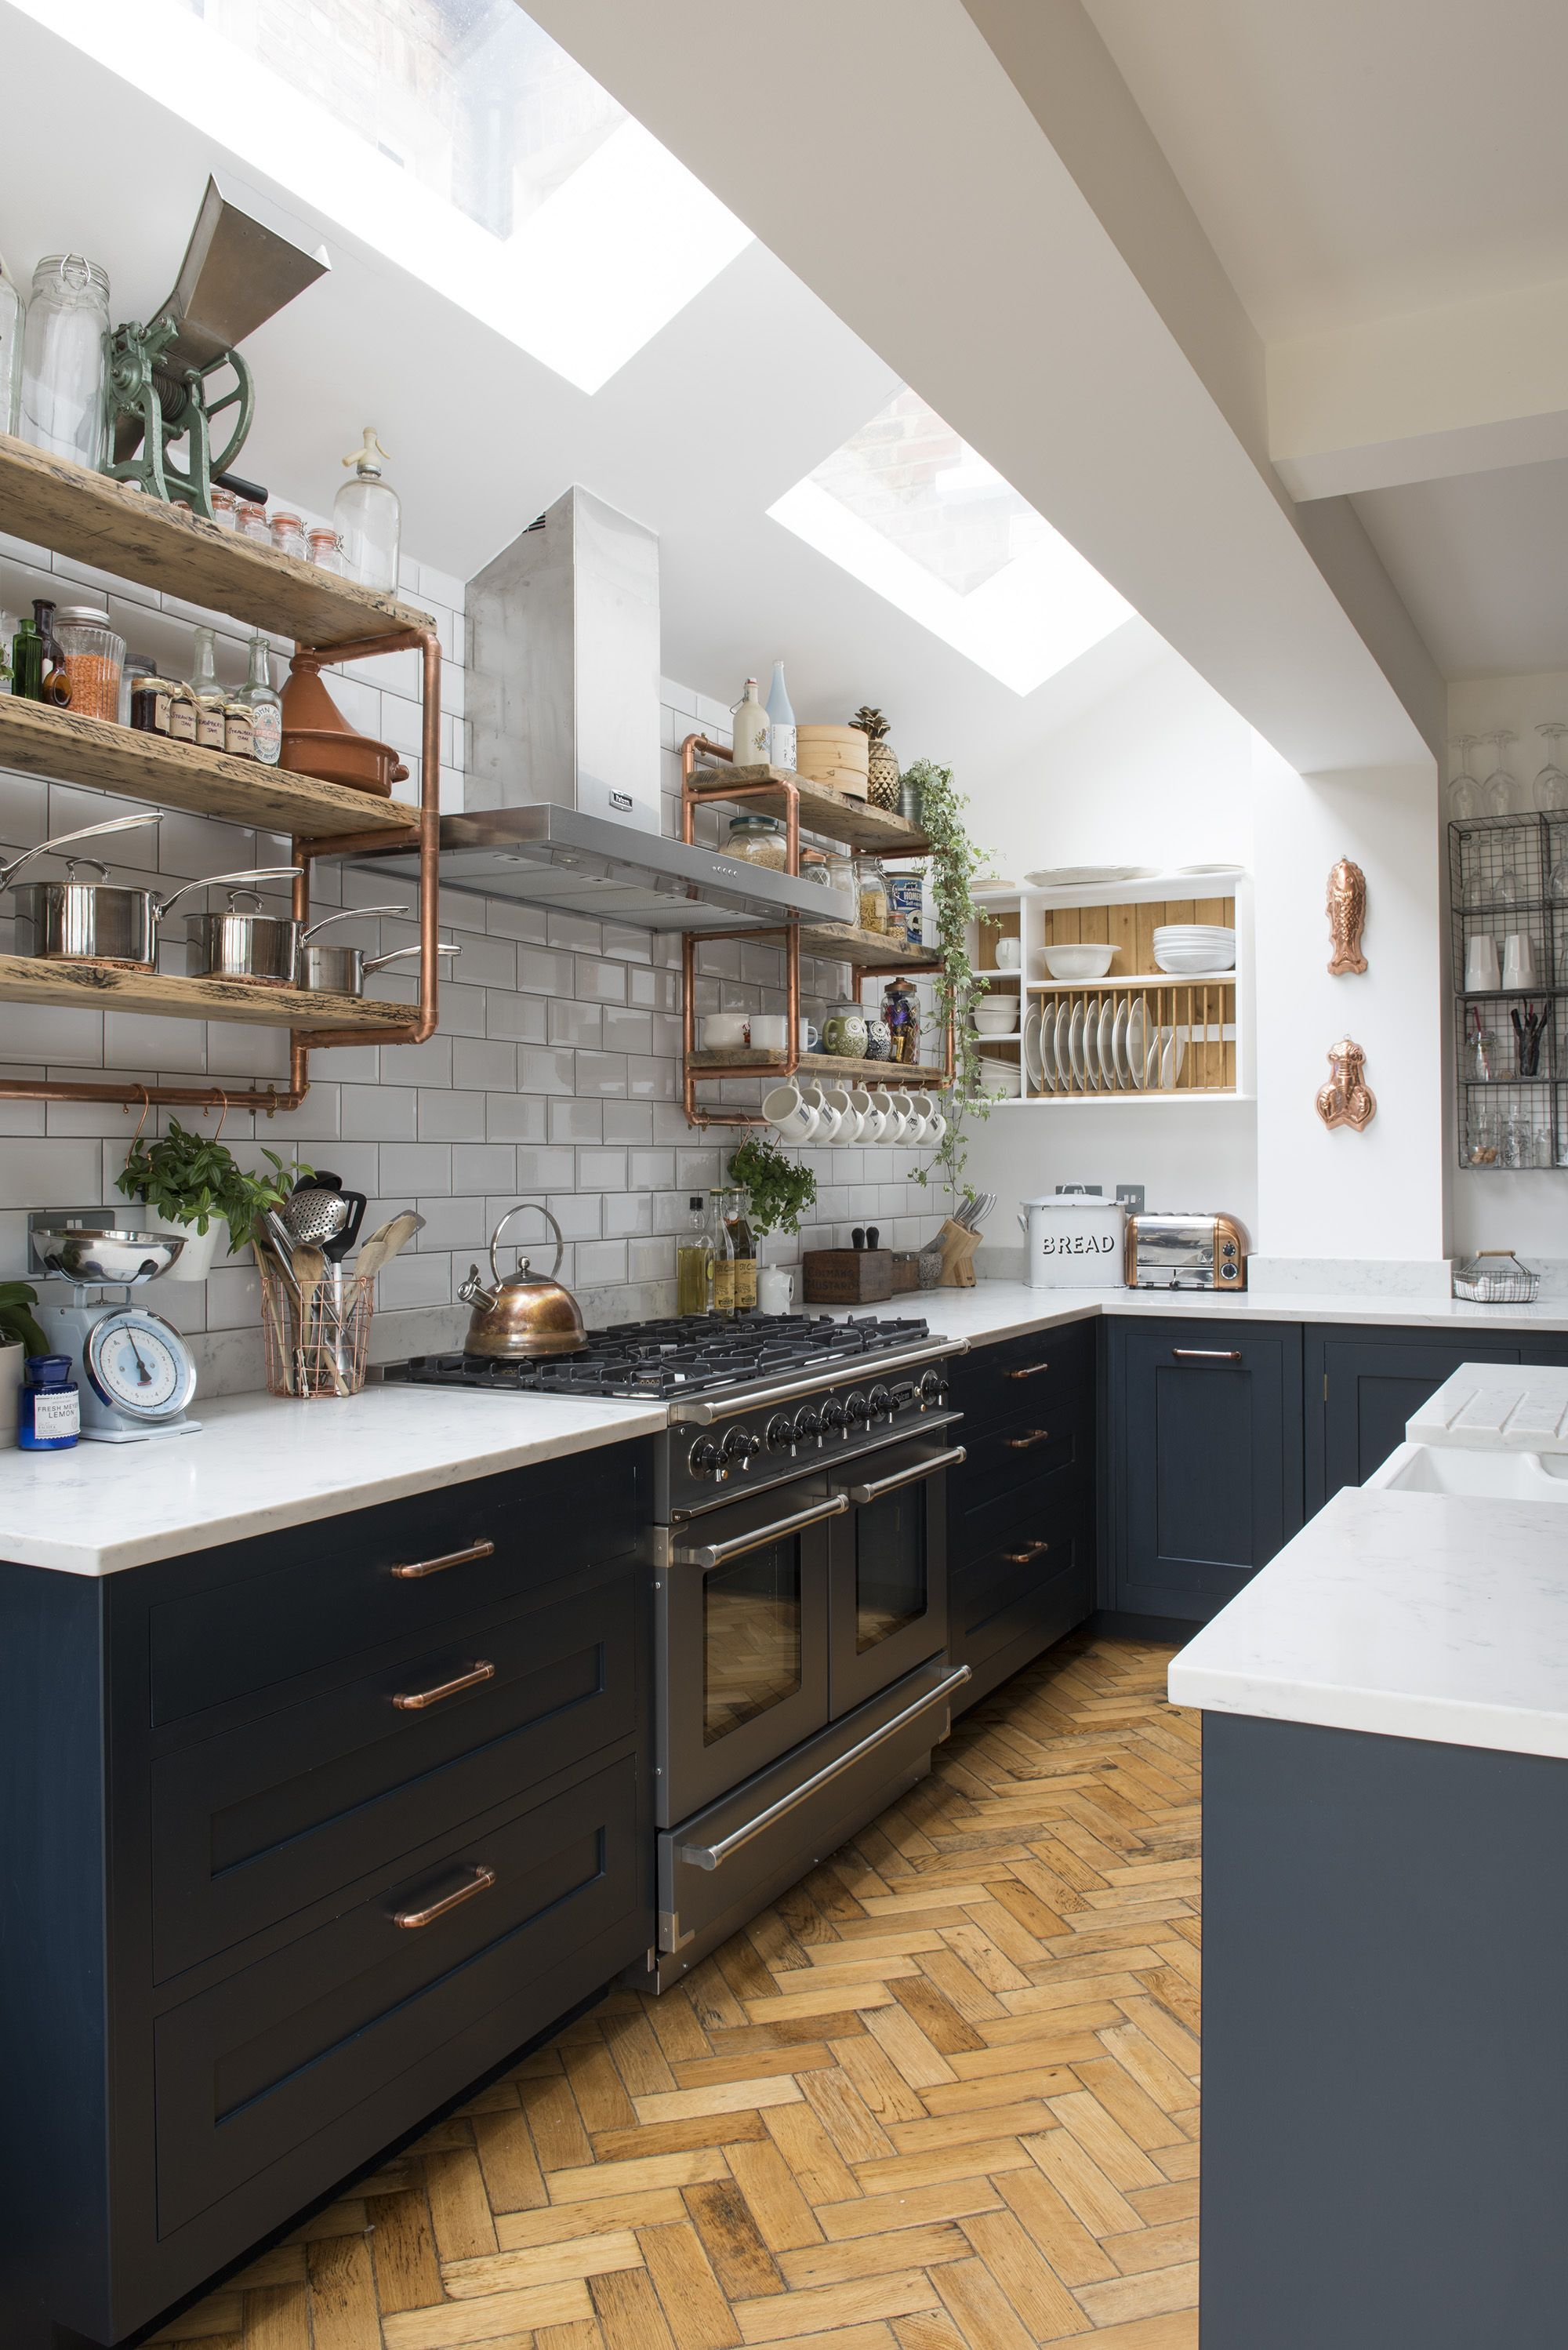 Real Home An Open Plan Kitchen Extension With Industrial Touches Interior Design Kitchen Small Home Decor Kitchen Interior Design Kitchen